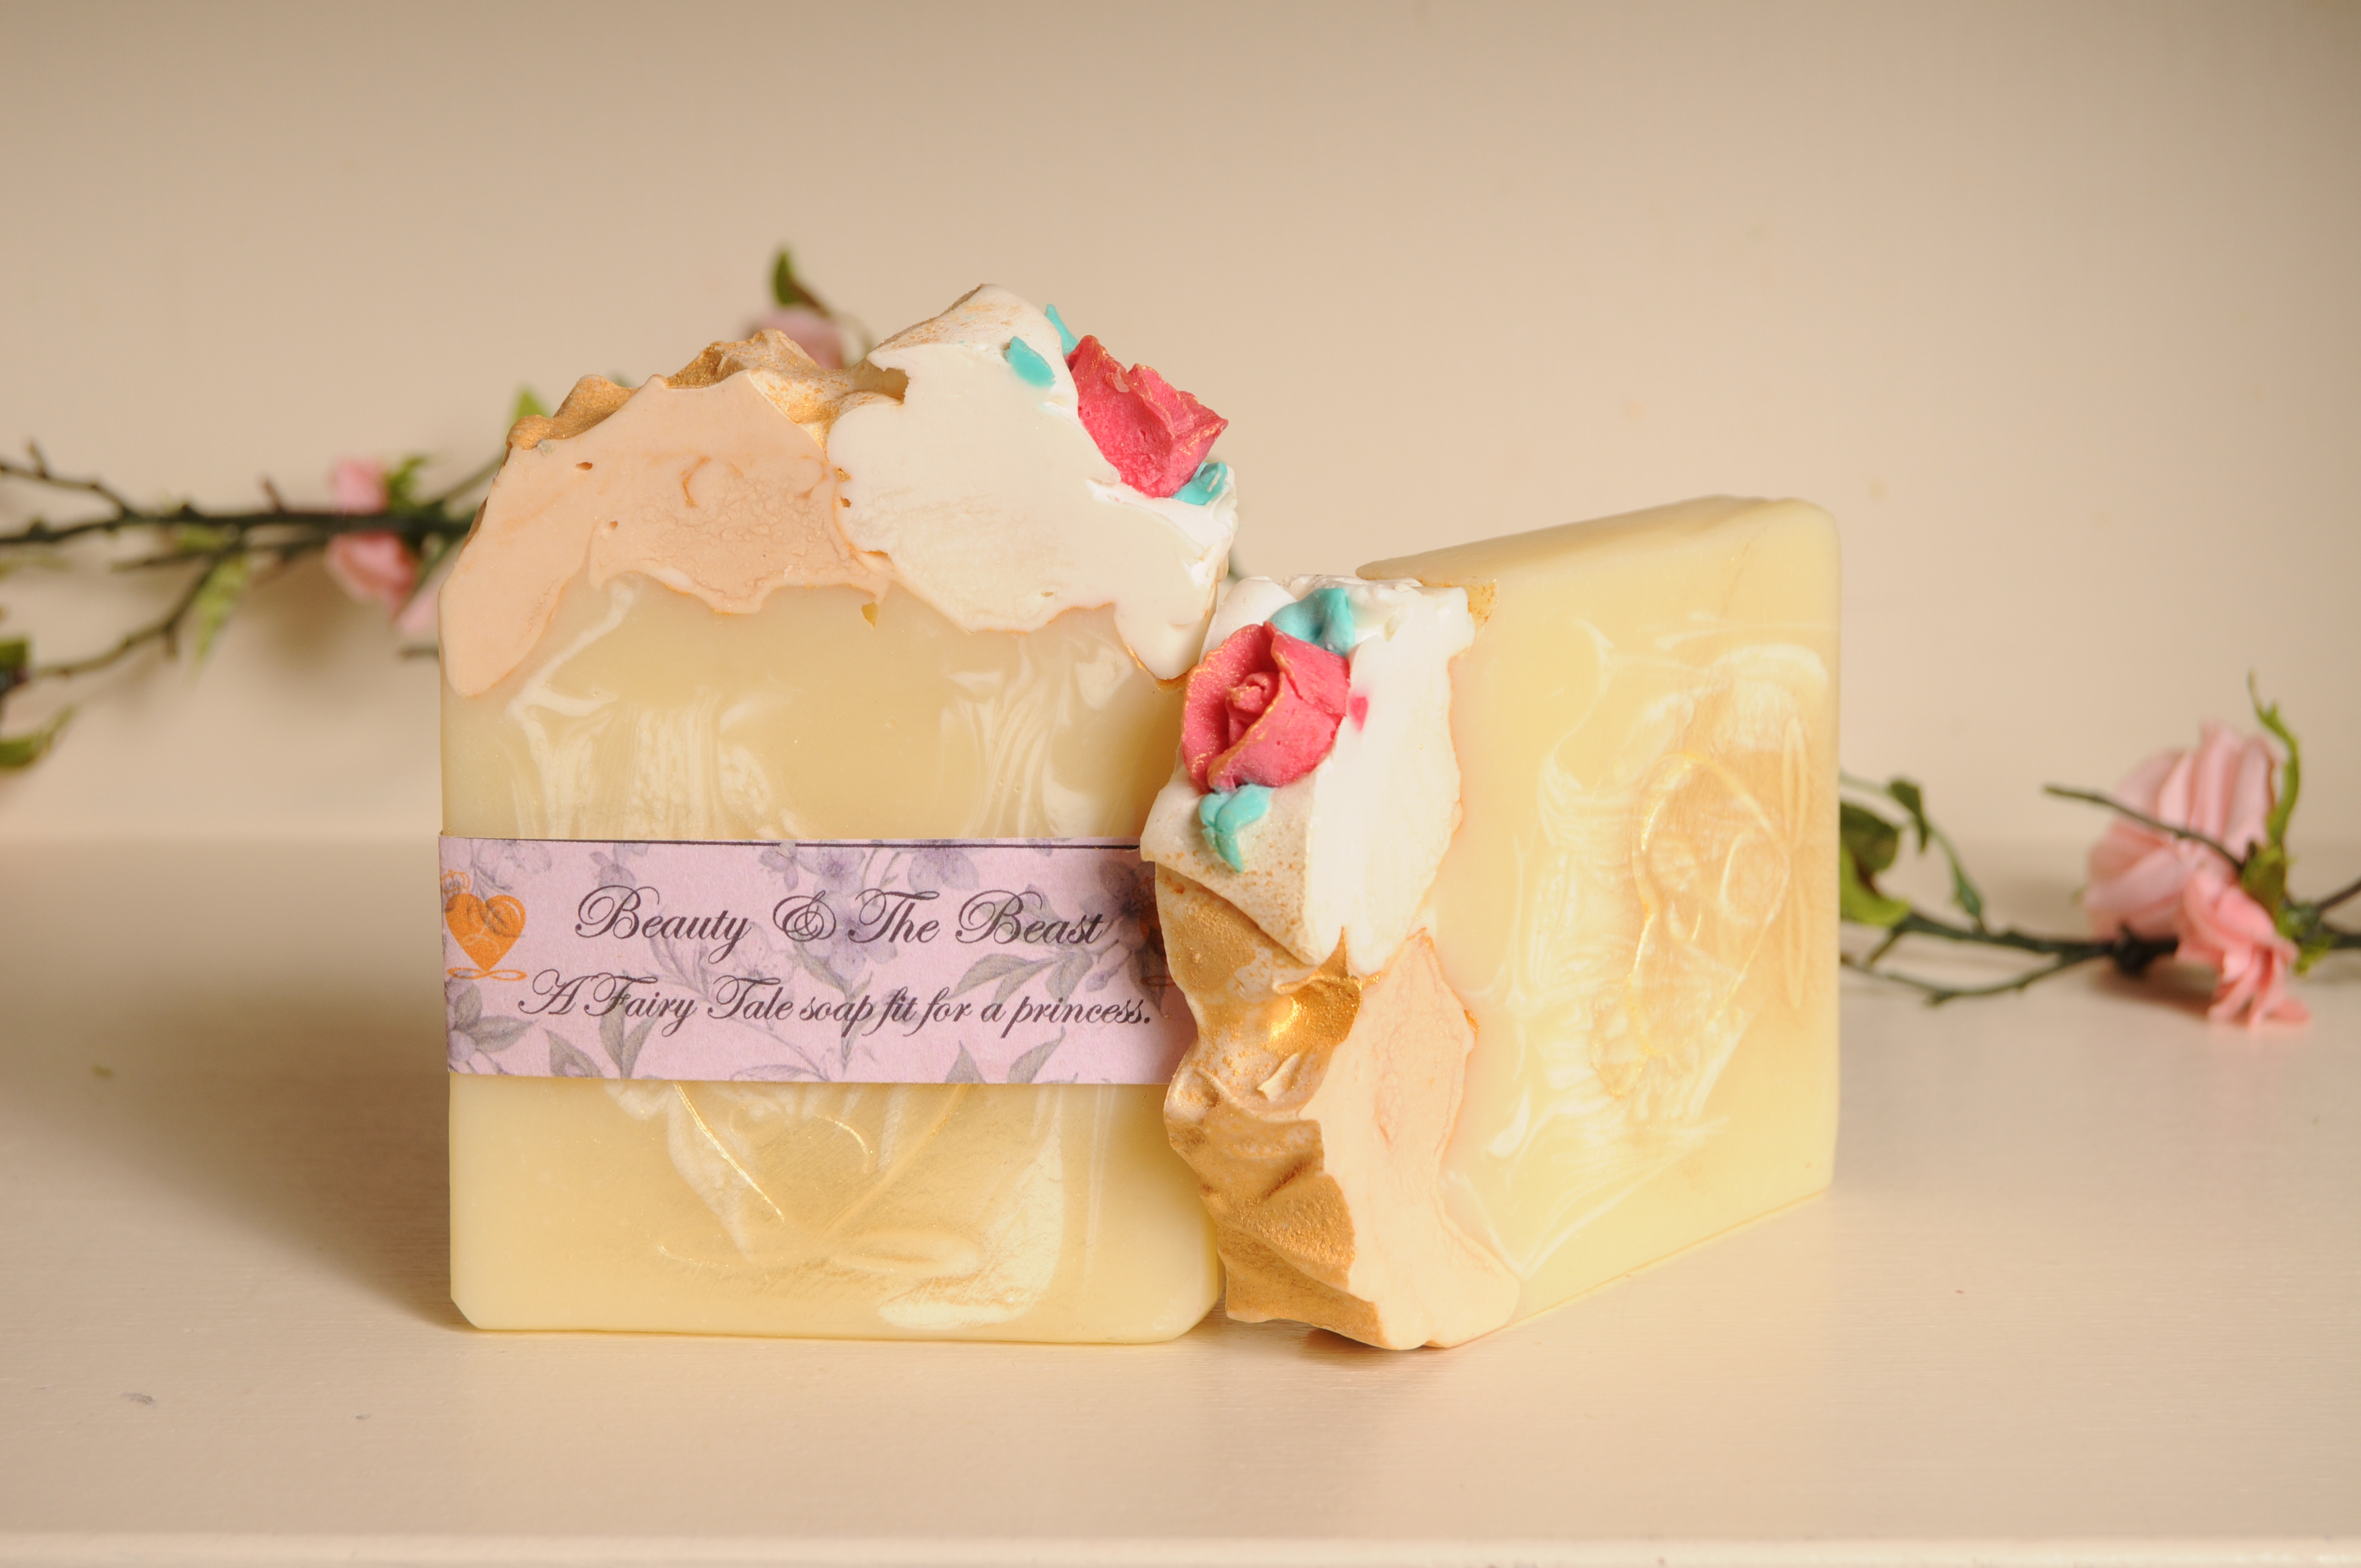 BEAUTY AND THE BEAST SOAP BAR